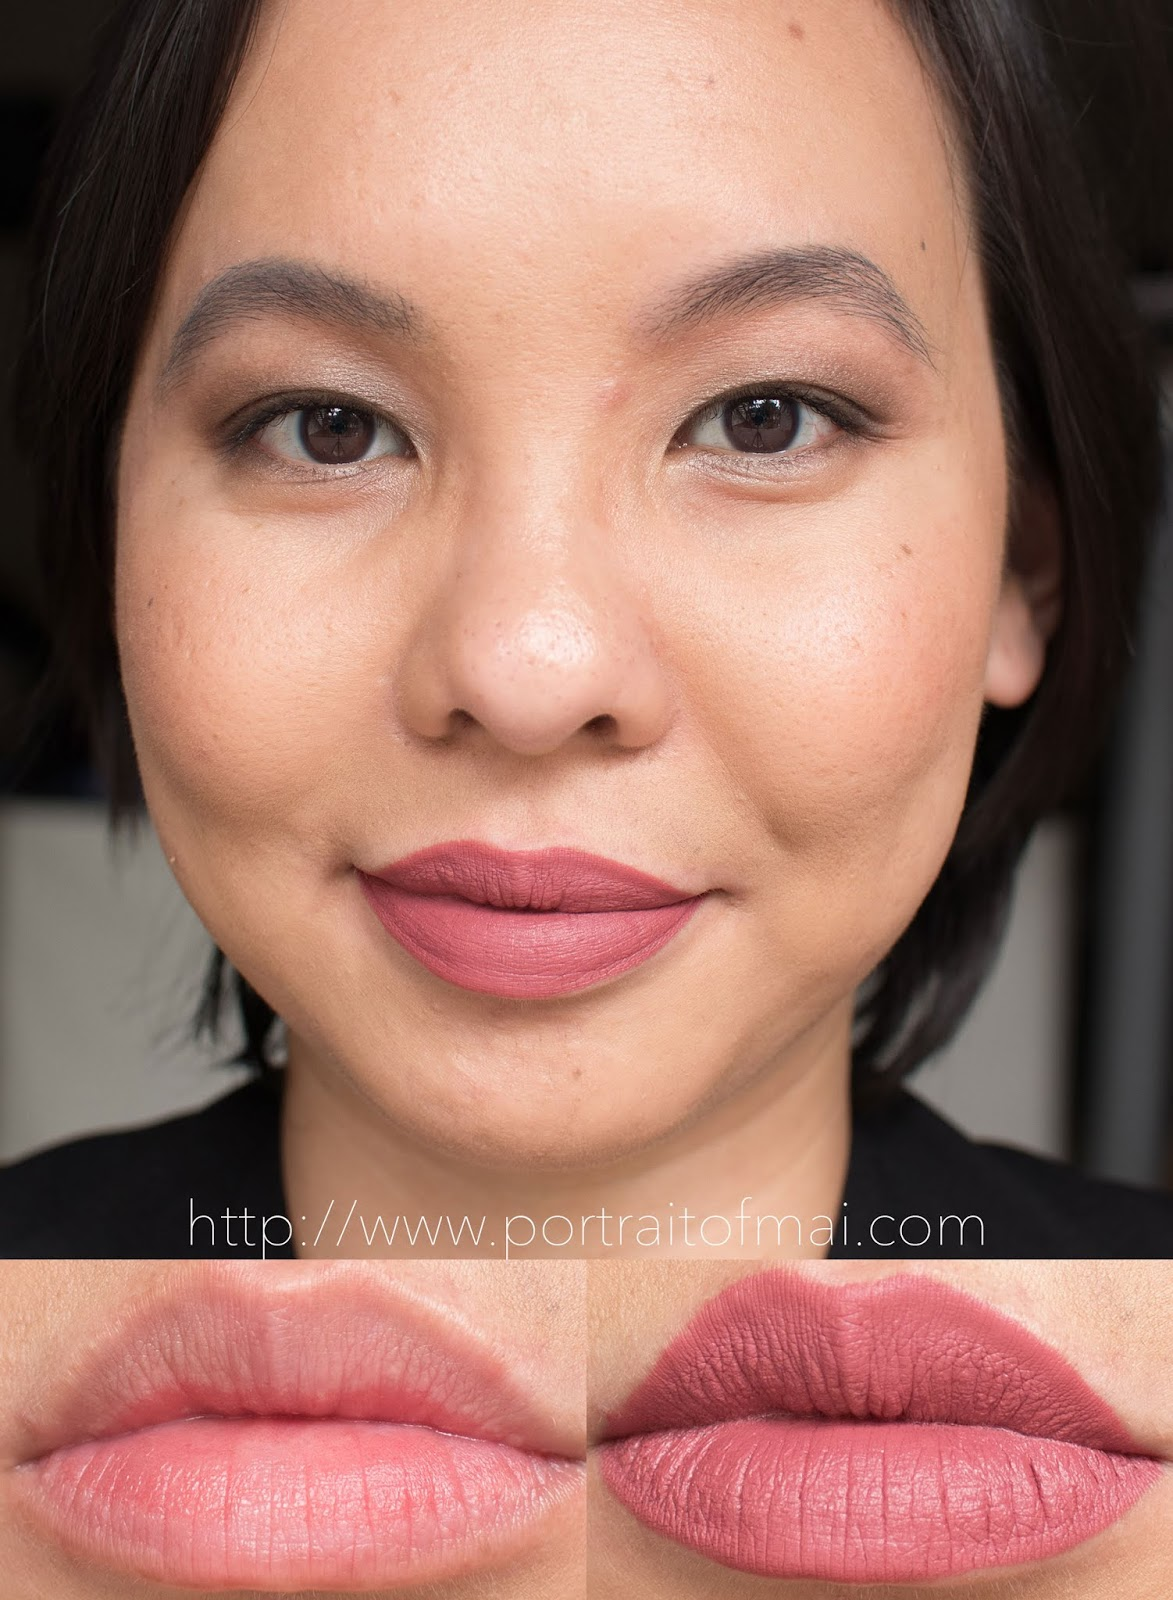 Colourpop Lux Lipstick in Little League Swatch